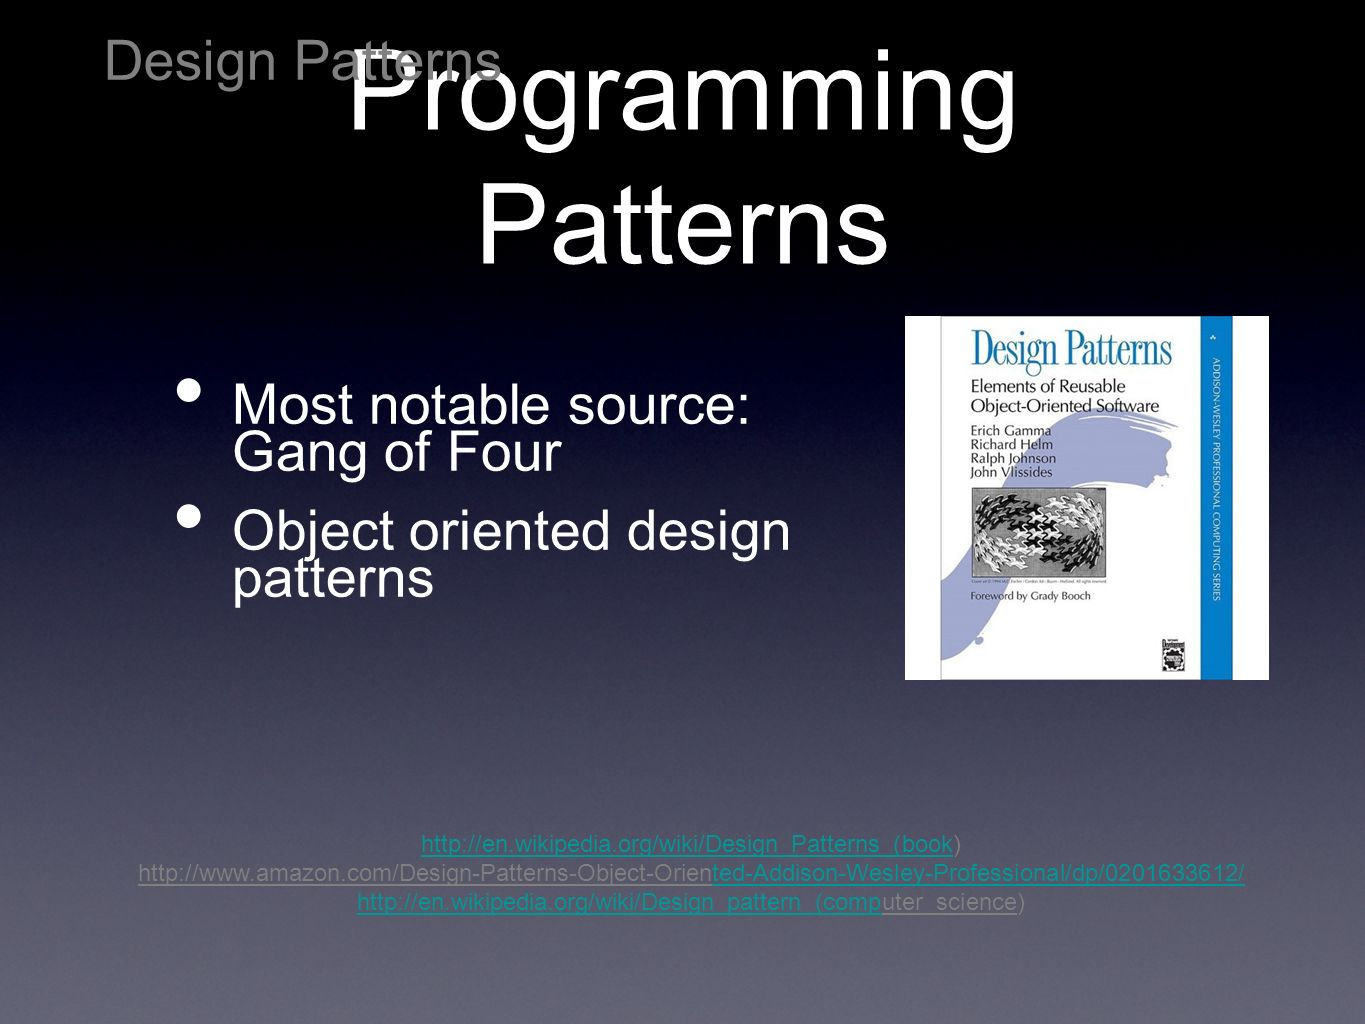 Programming Patterns Most notable source: Gang of Four Object oriented design patterns Design Patterns http://en.wikipedia.org/wiki/Design_Patterns_(bookhttp://en.wikipedia.org/wiki/Design_Patterns_(book) http://www.amazon.com/Design-Patterns-Object-Oriented-Addison-Wesley-Professional/dp/0201633612/ted-Addison-Wesley-Professional/dp/0201633612/ http://en.wikipedia.org/wiki/Design_pattern_(comphttp://en.wikipedia.org/wiki/Design_pattern_(computer_science)